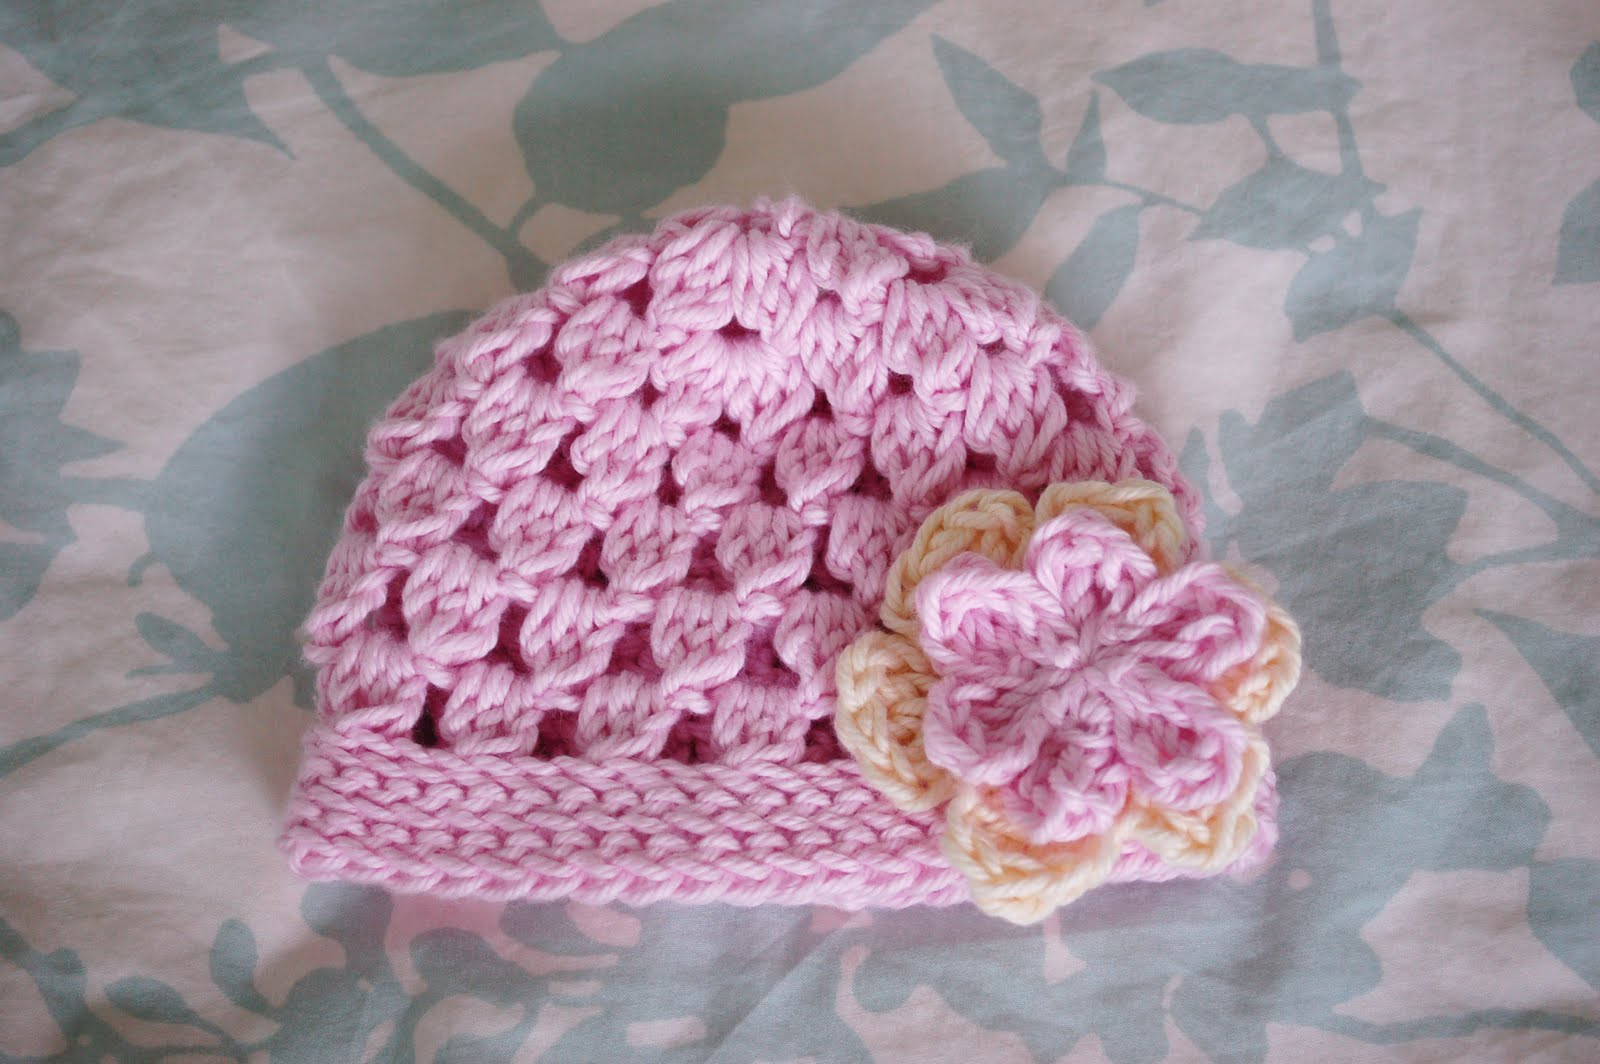 Fresh Crochet Patterns Baby Beanie Free Crochet Patterns for toddlers Of Brilliant 47 Photos Free Crochet Patterns for toddlers